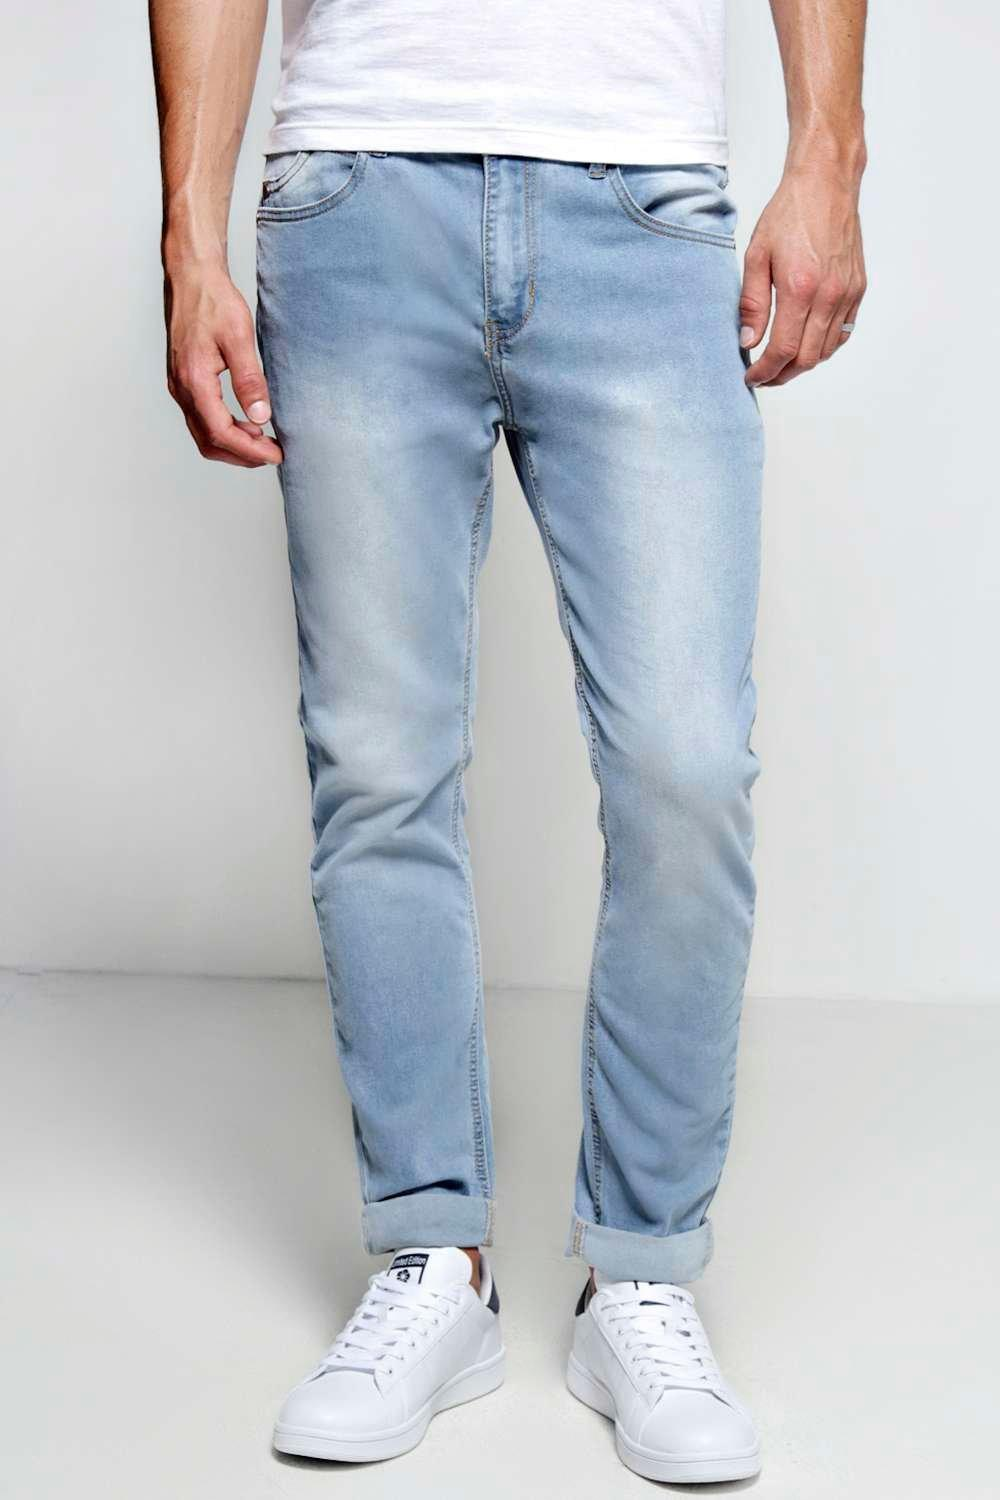 boohooMAN blue Stone Washed Stretch Skinny Fit Jeans